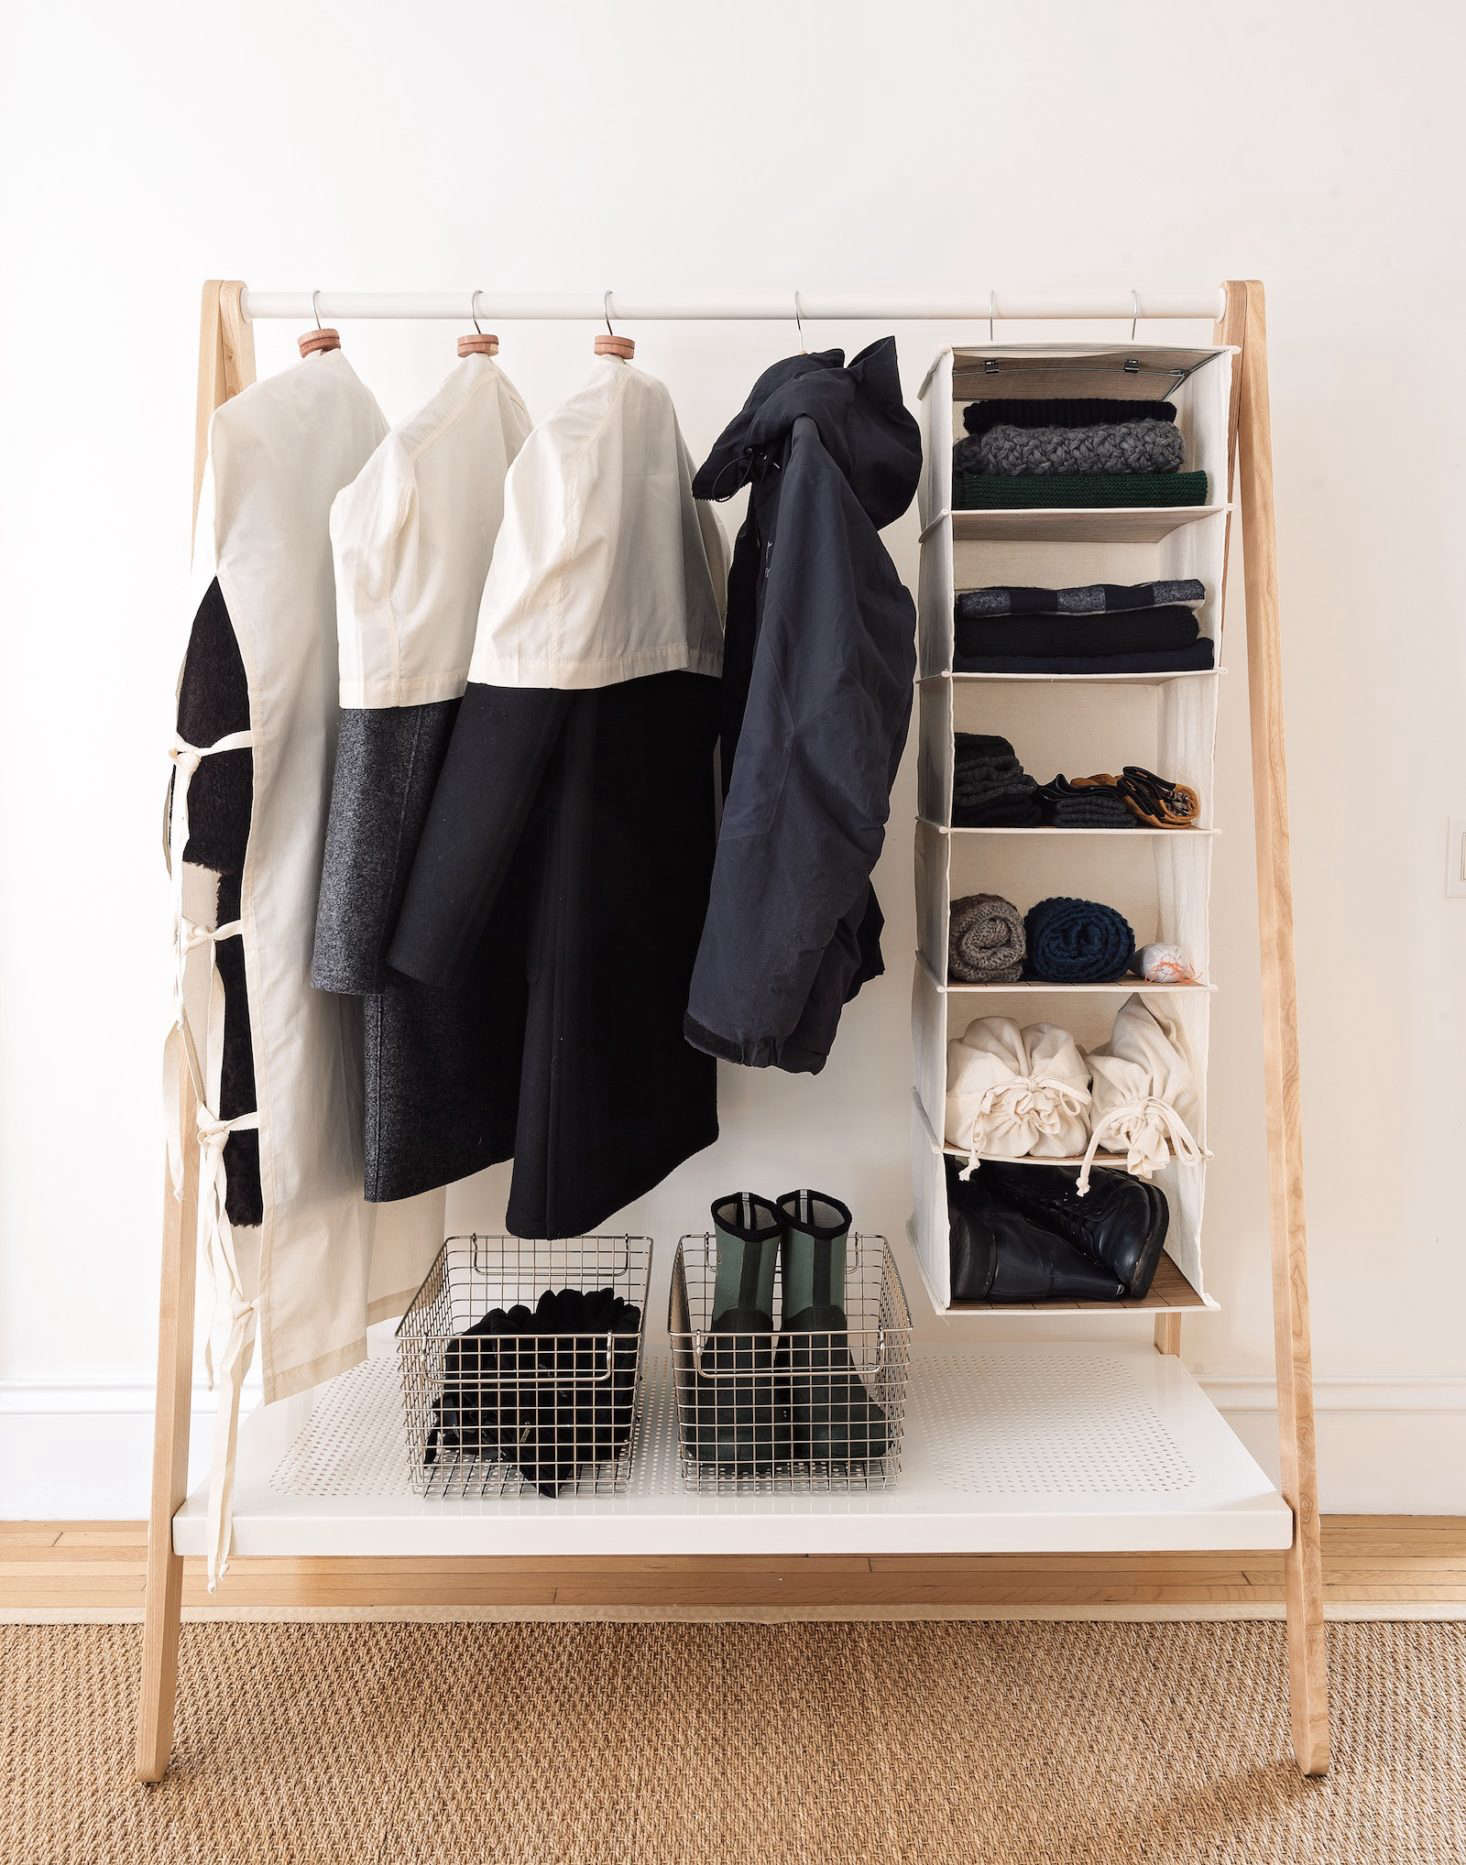 hafele and america rack pin ideas shoes pants wardrobe bedroom organizers pinterest clothes synergy closet